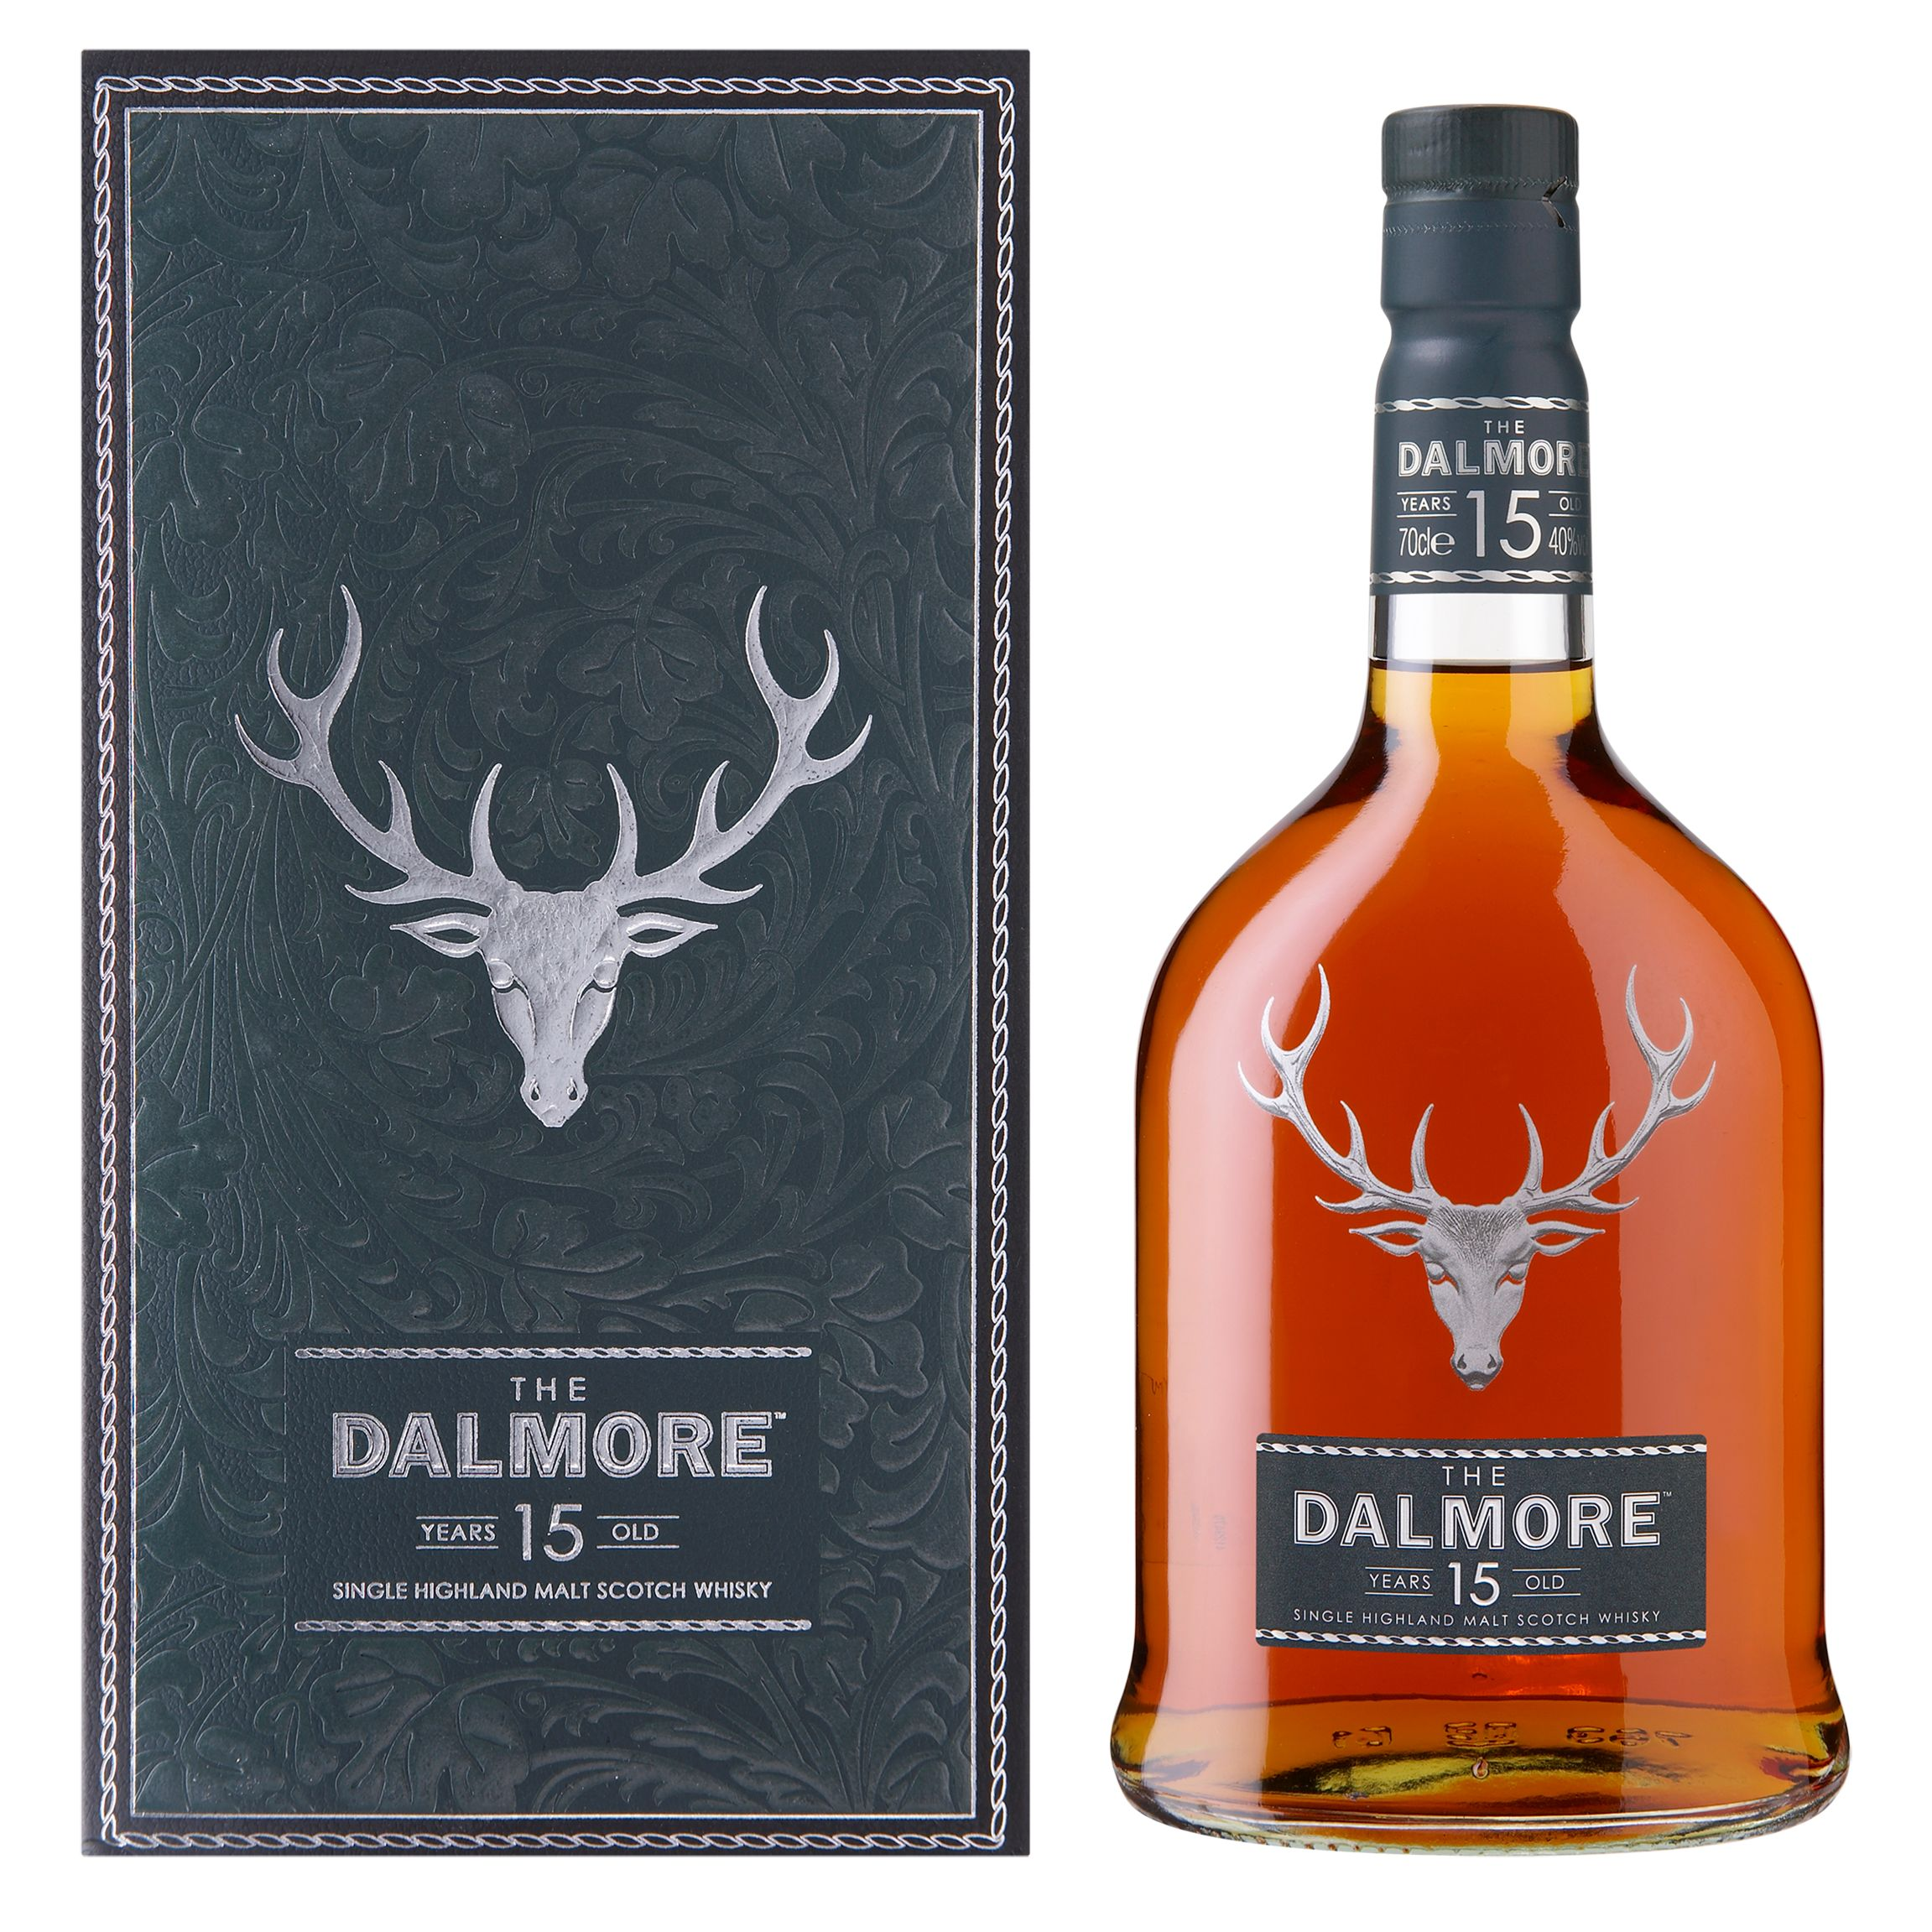 The Dalmore 15 Year Old Highland Single Malt Whisky